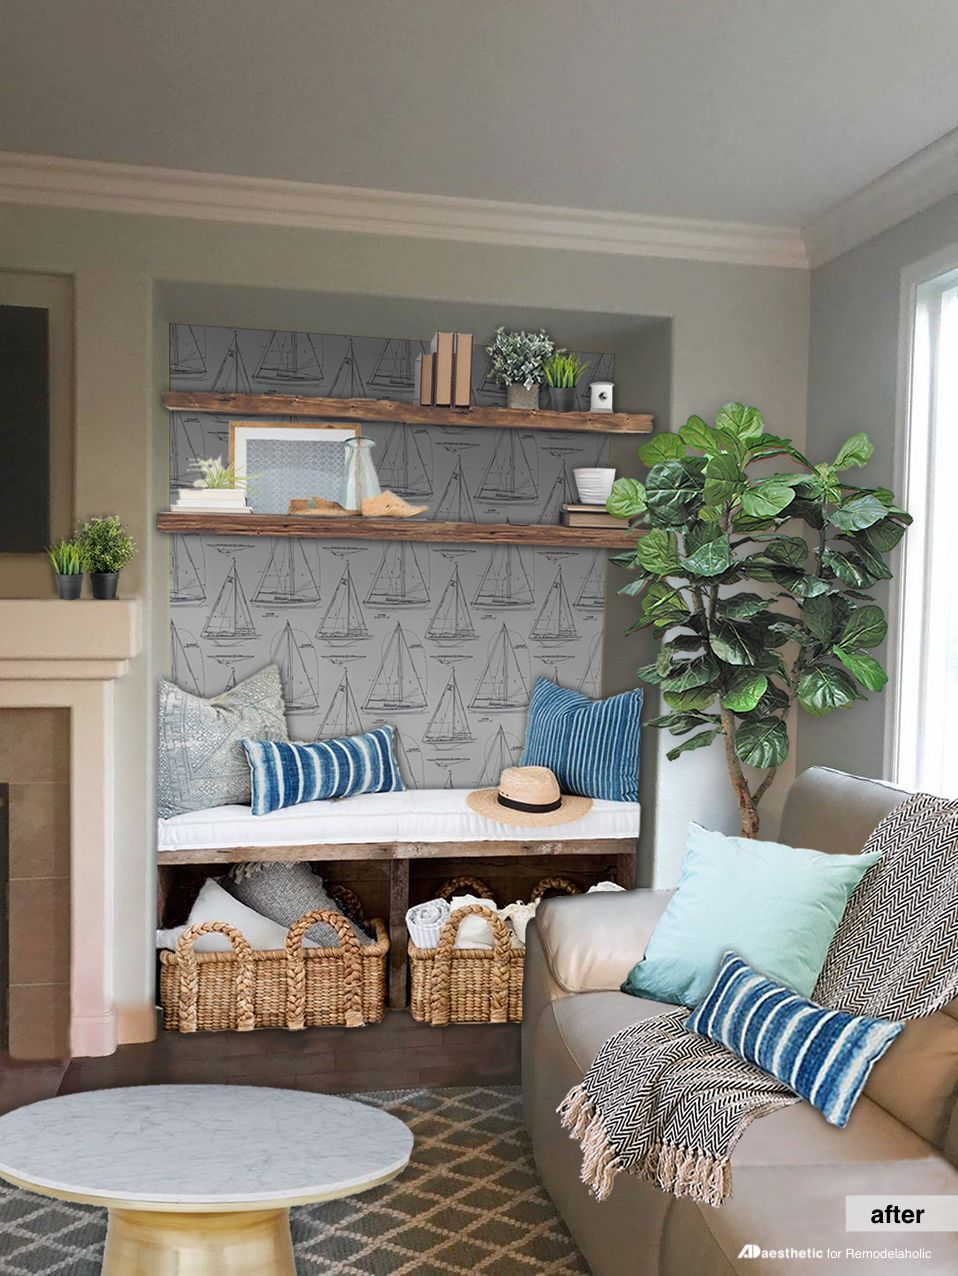 Many homes have those potentially awkward alcoves that are tricky